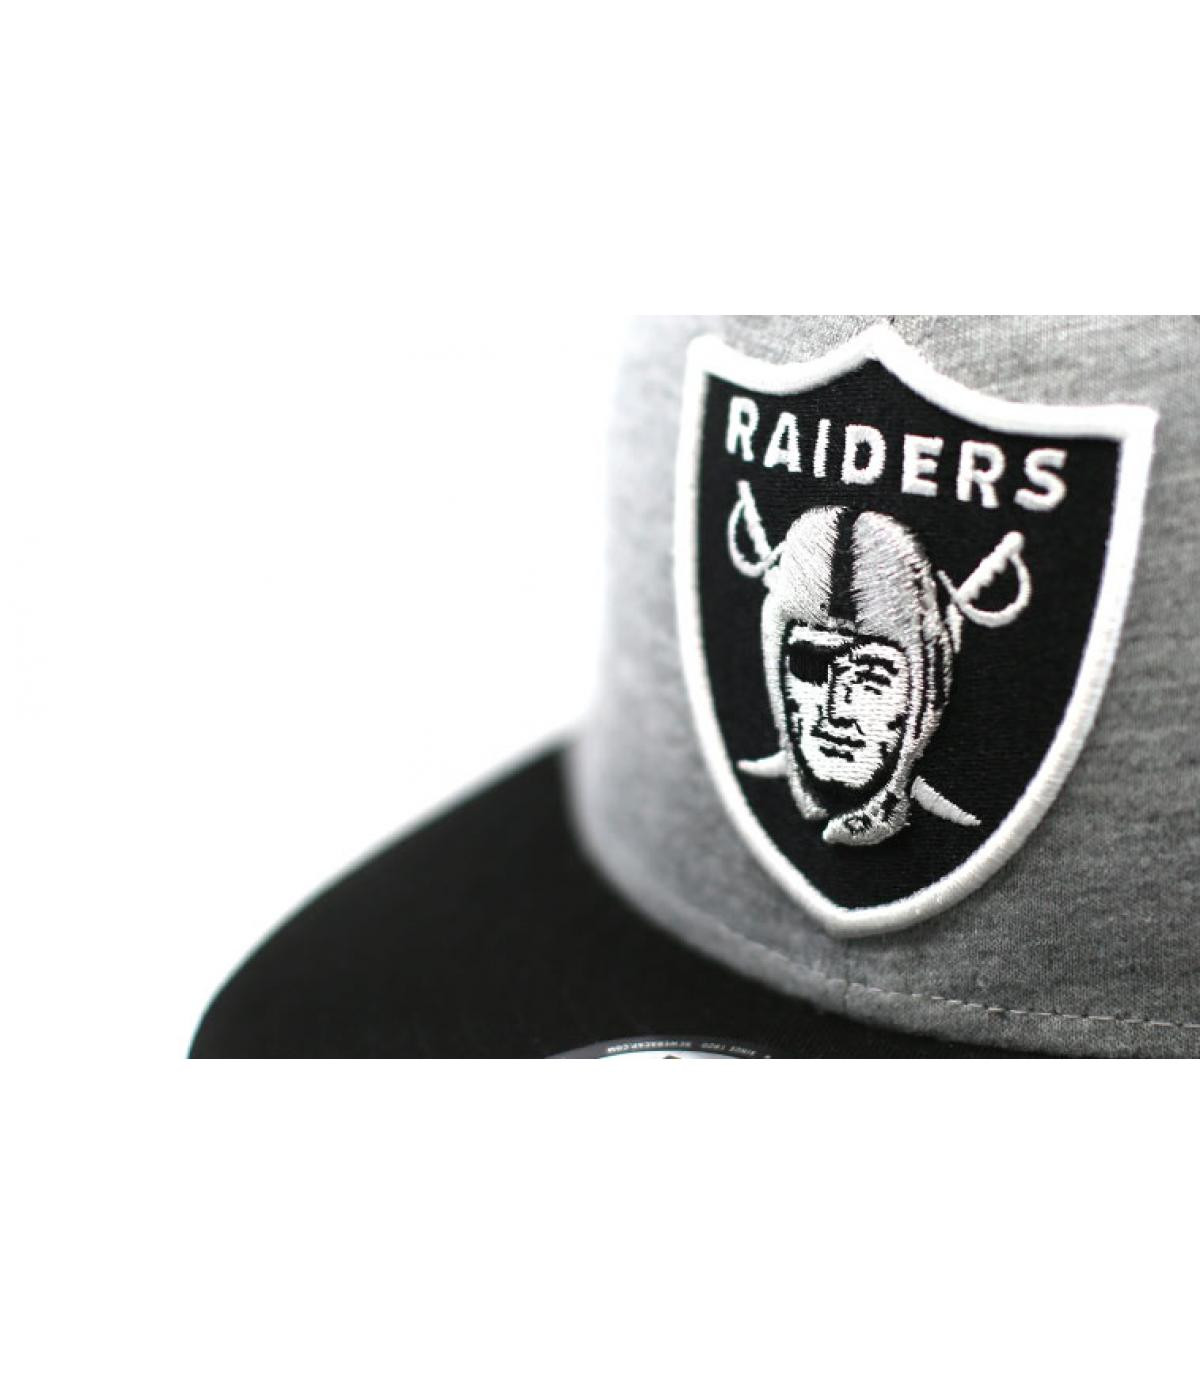 Détails Shadow Tech 9Fifty Raiders - image 3